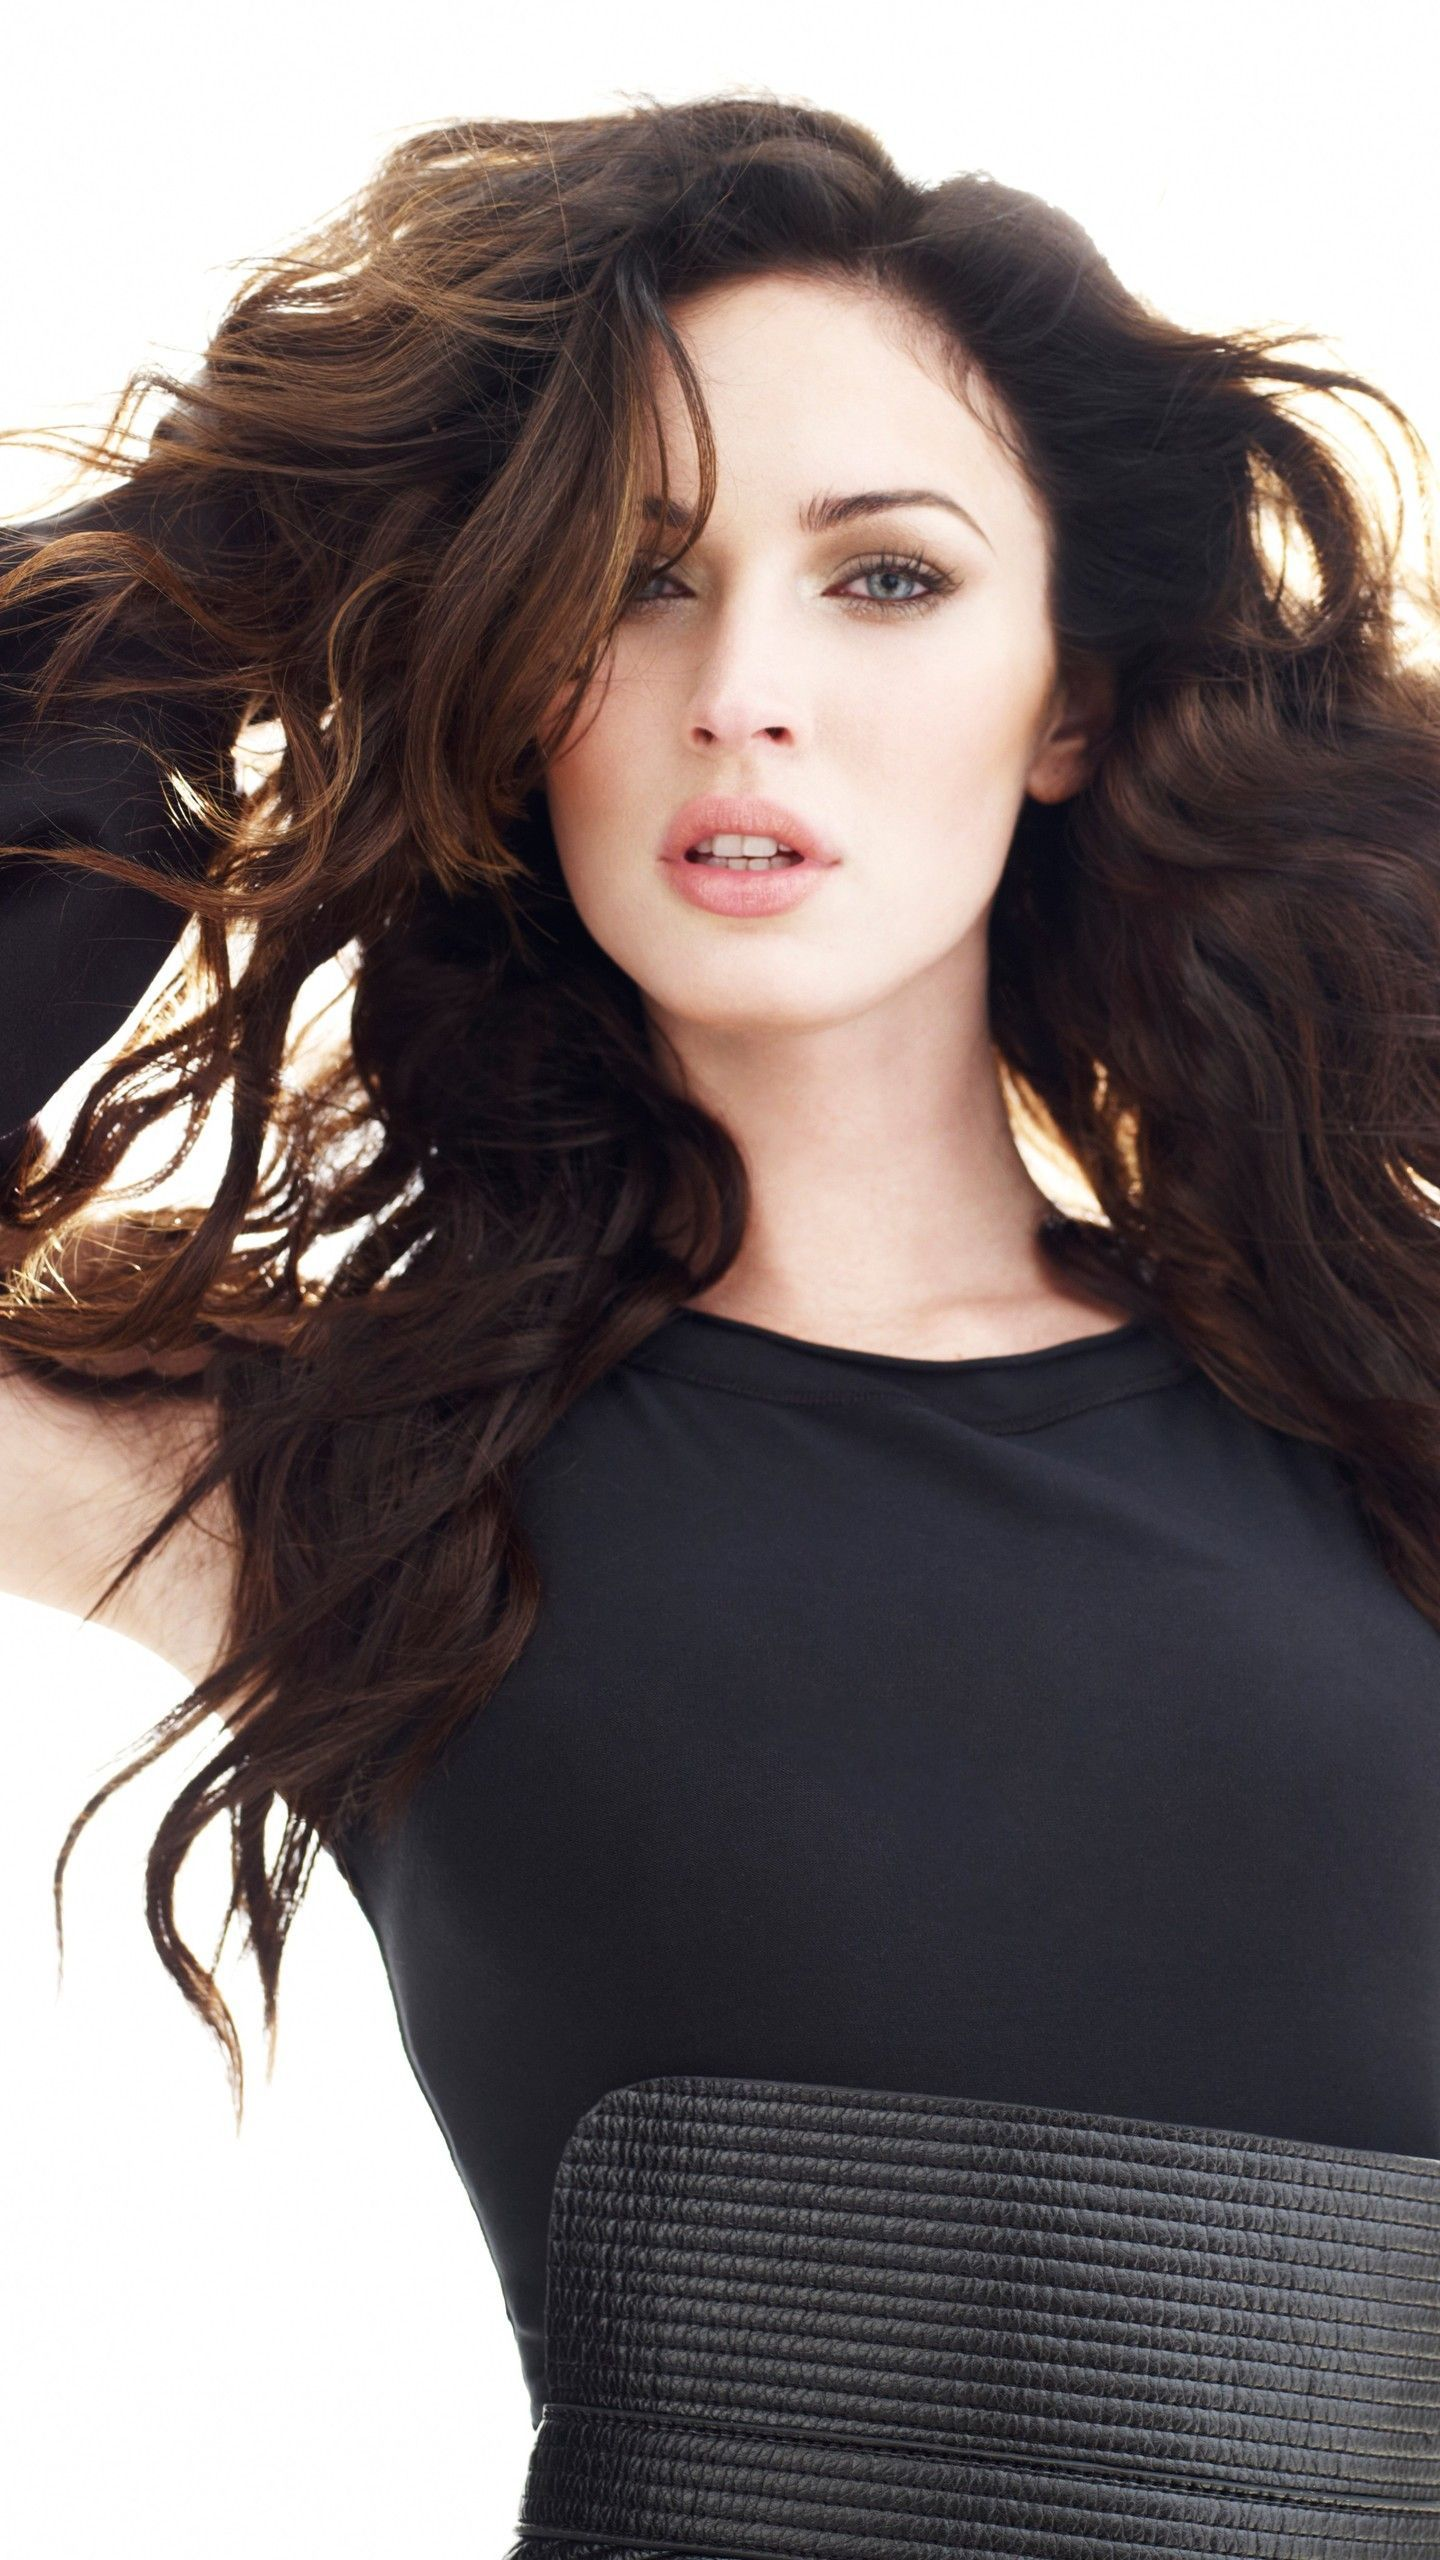 Megan Fox Wallpaper wallpaper poster save meganfox